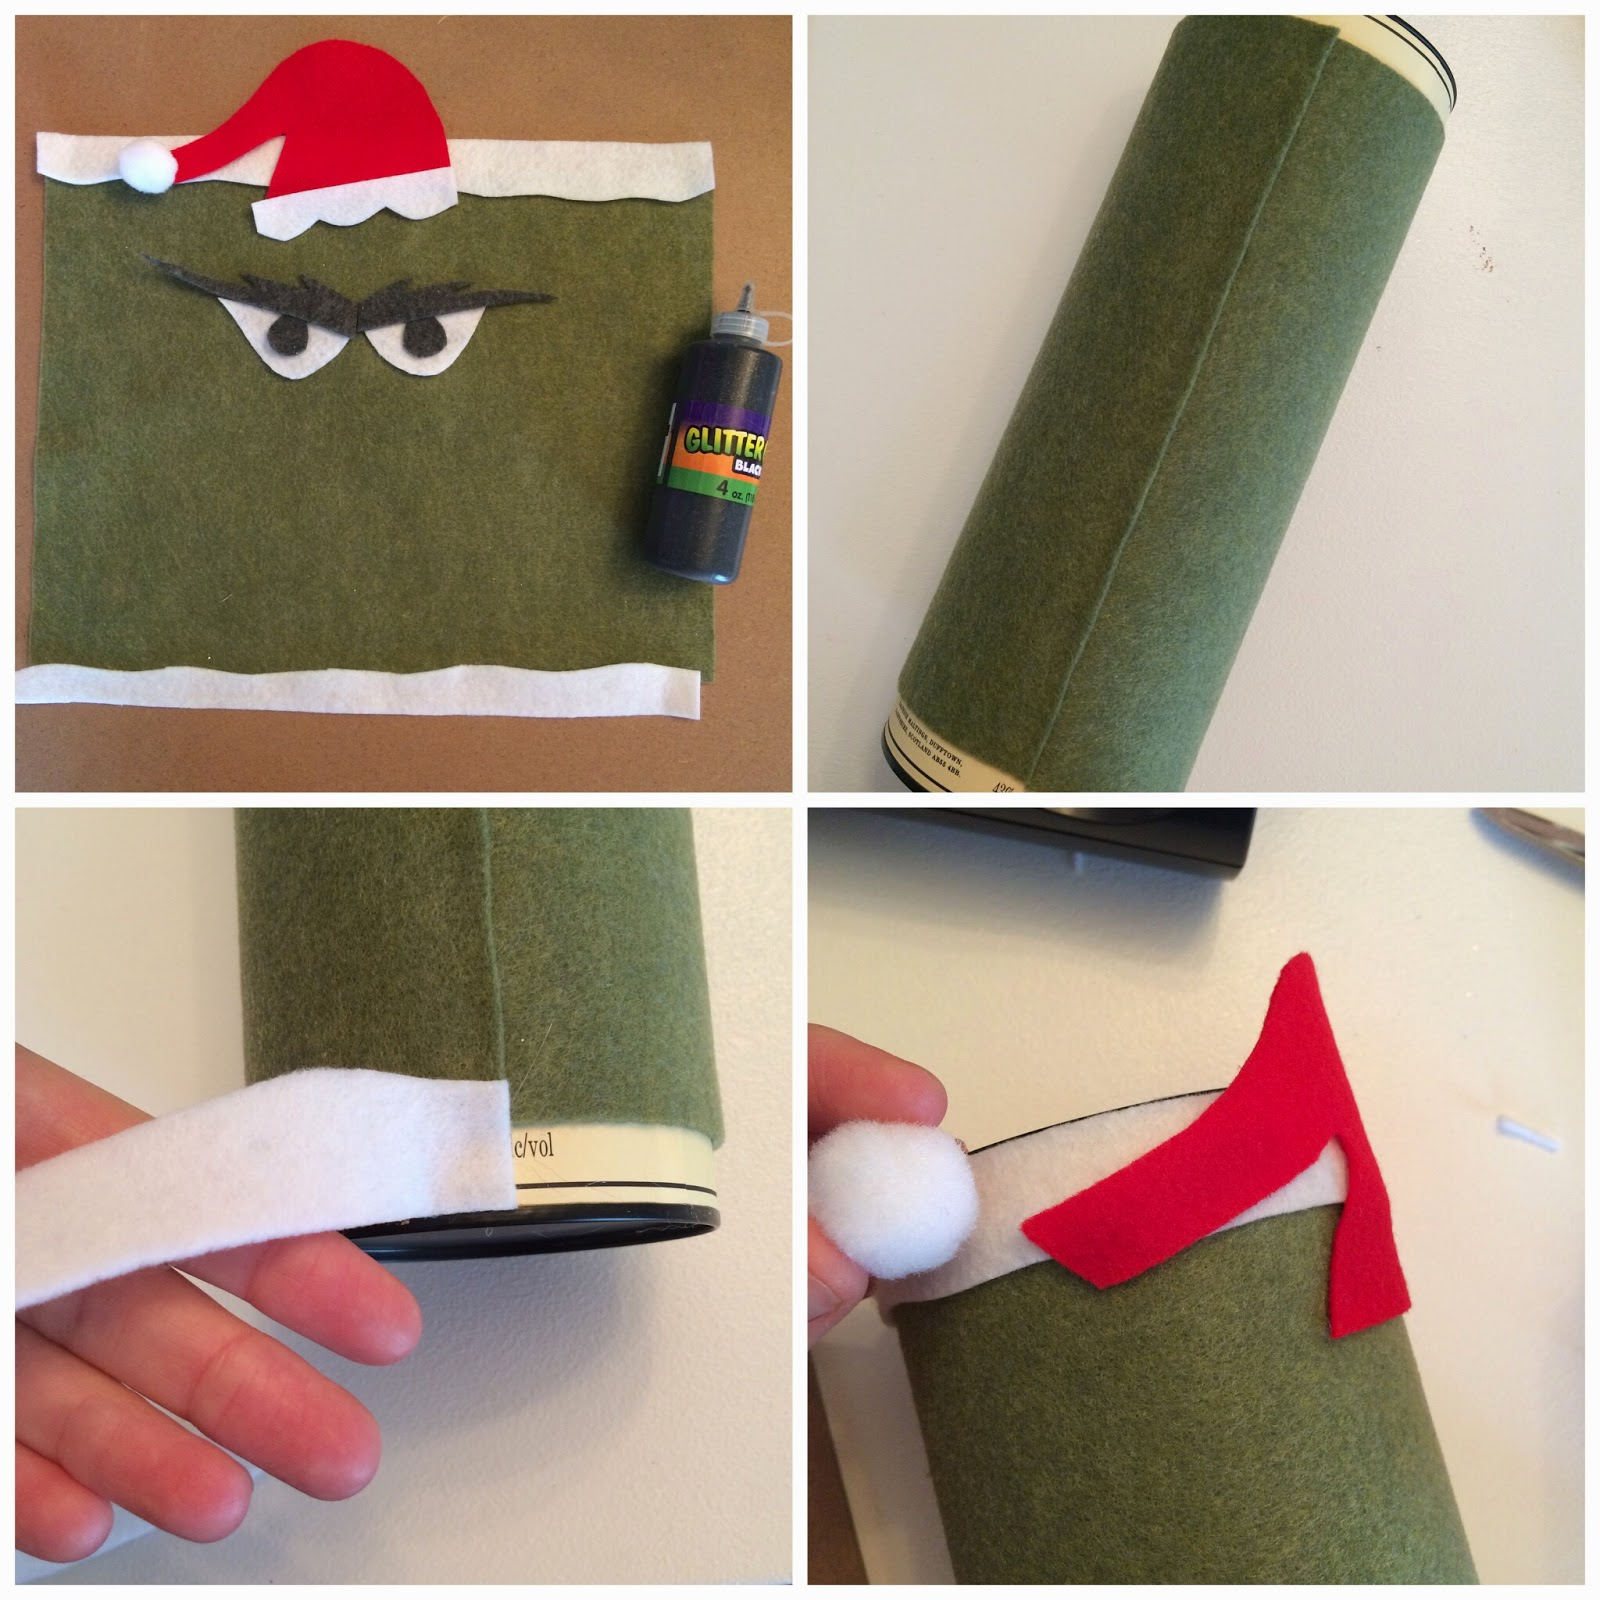 DIY Holiday Money GRINCH Bank - An Upcycle Project, Felt Craft - LeroyLime